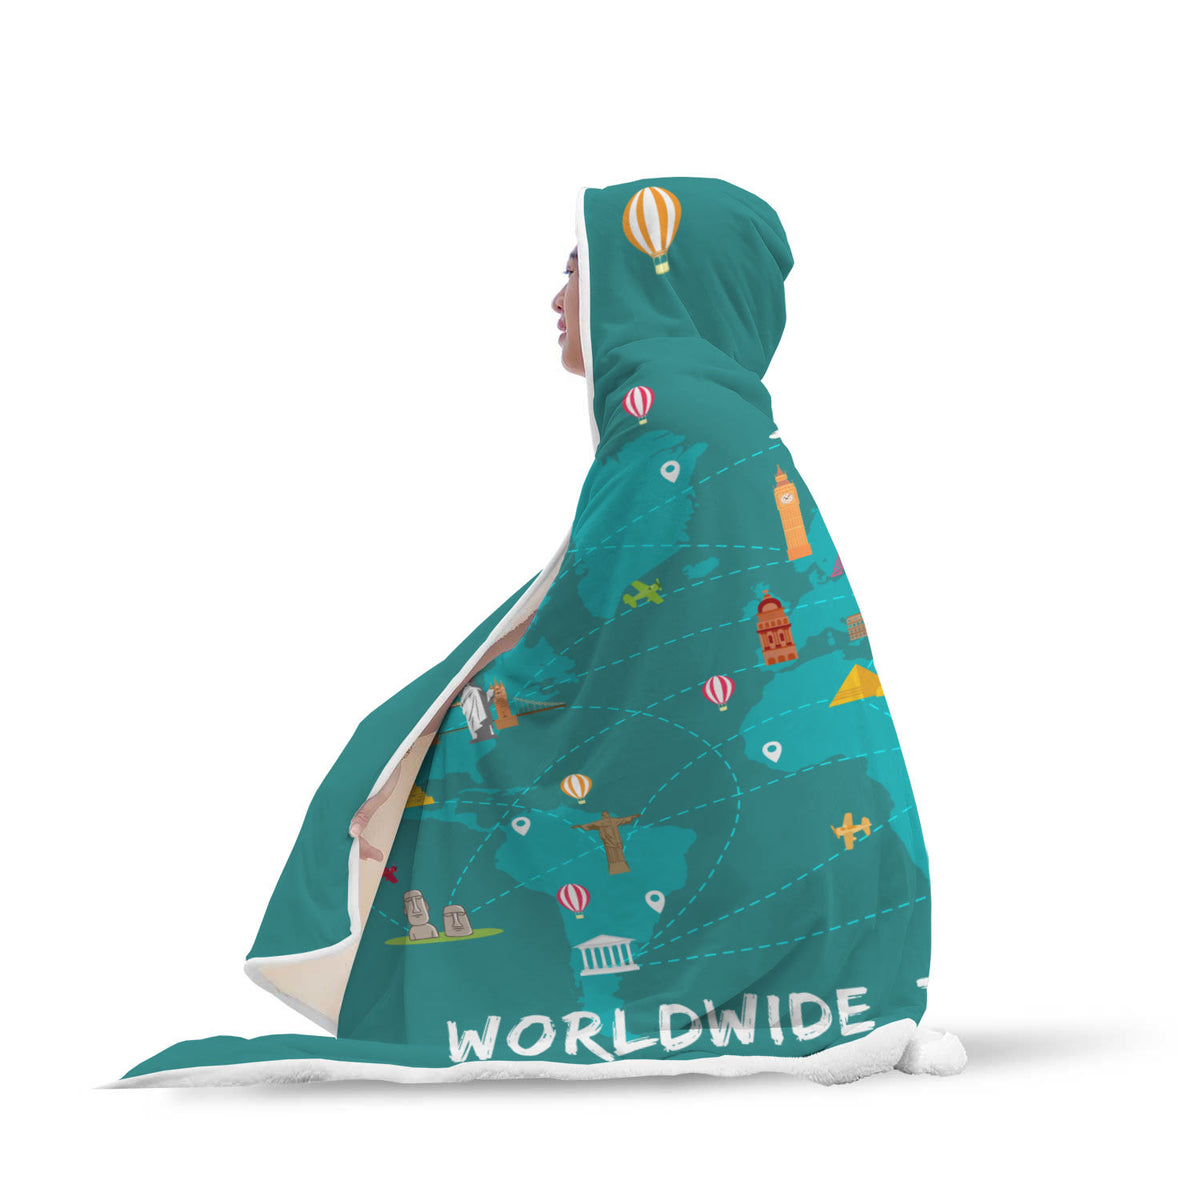 Travel Themed Hooded Blanket: Worldwide Travel Vibes Wrapped